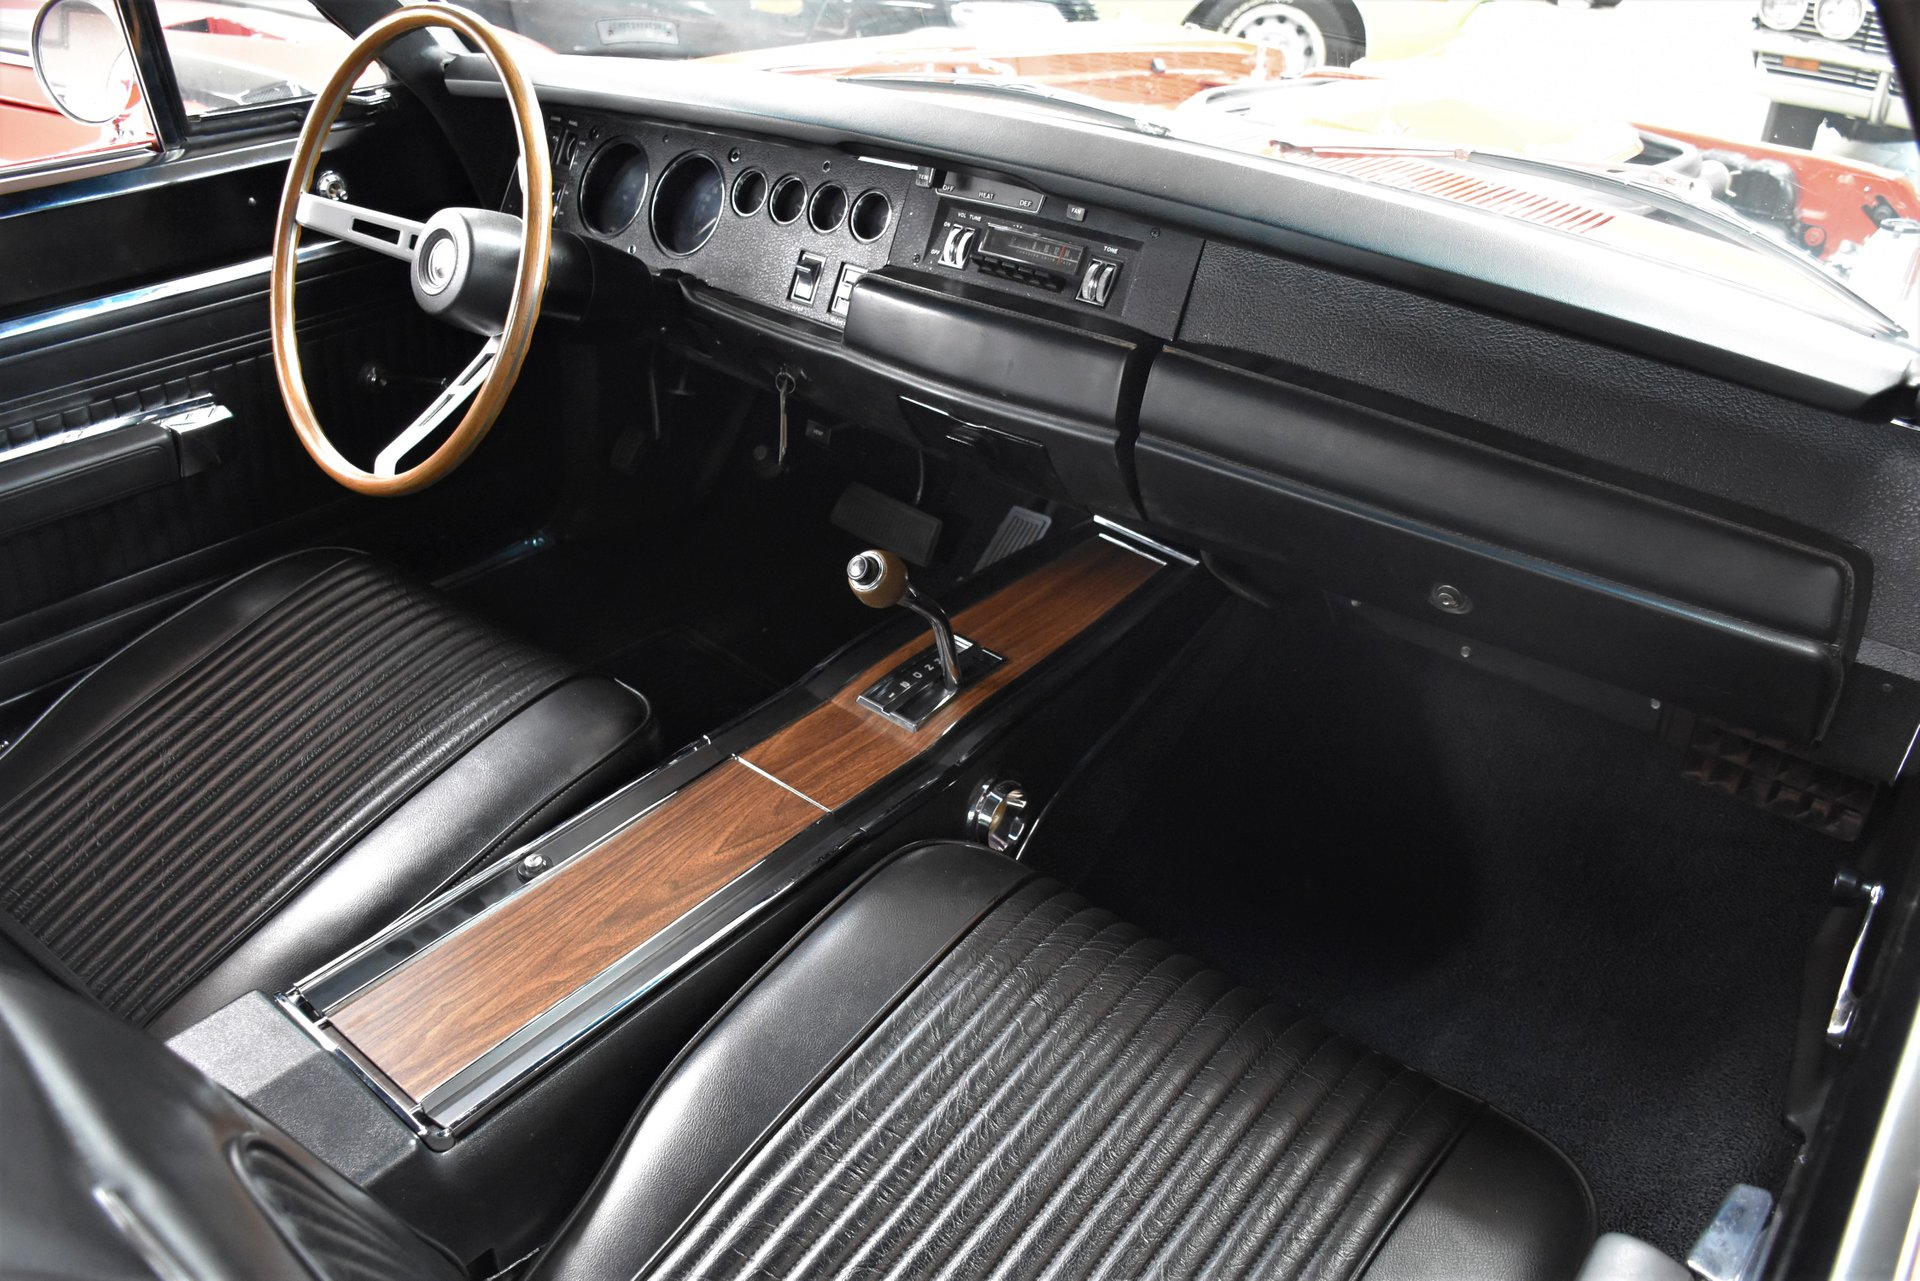 1969 1/2 Dodge Coronet | Ideal Classic Cars LLC